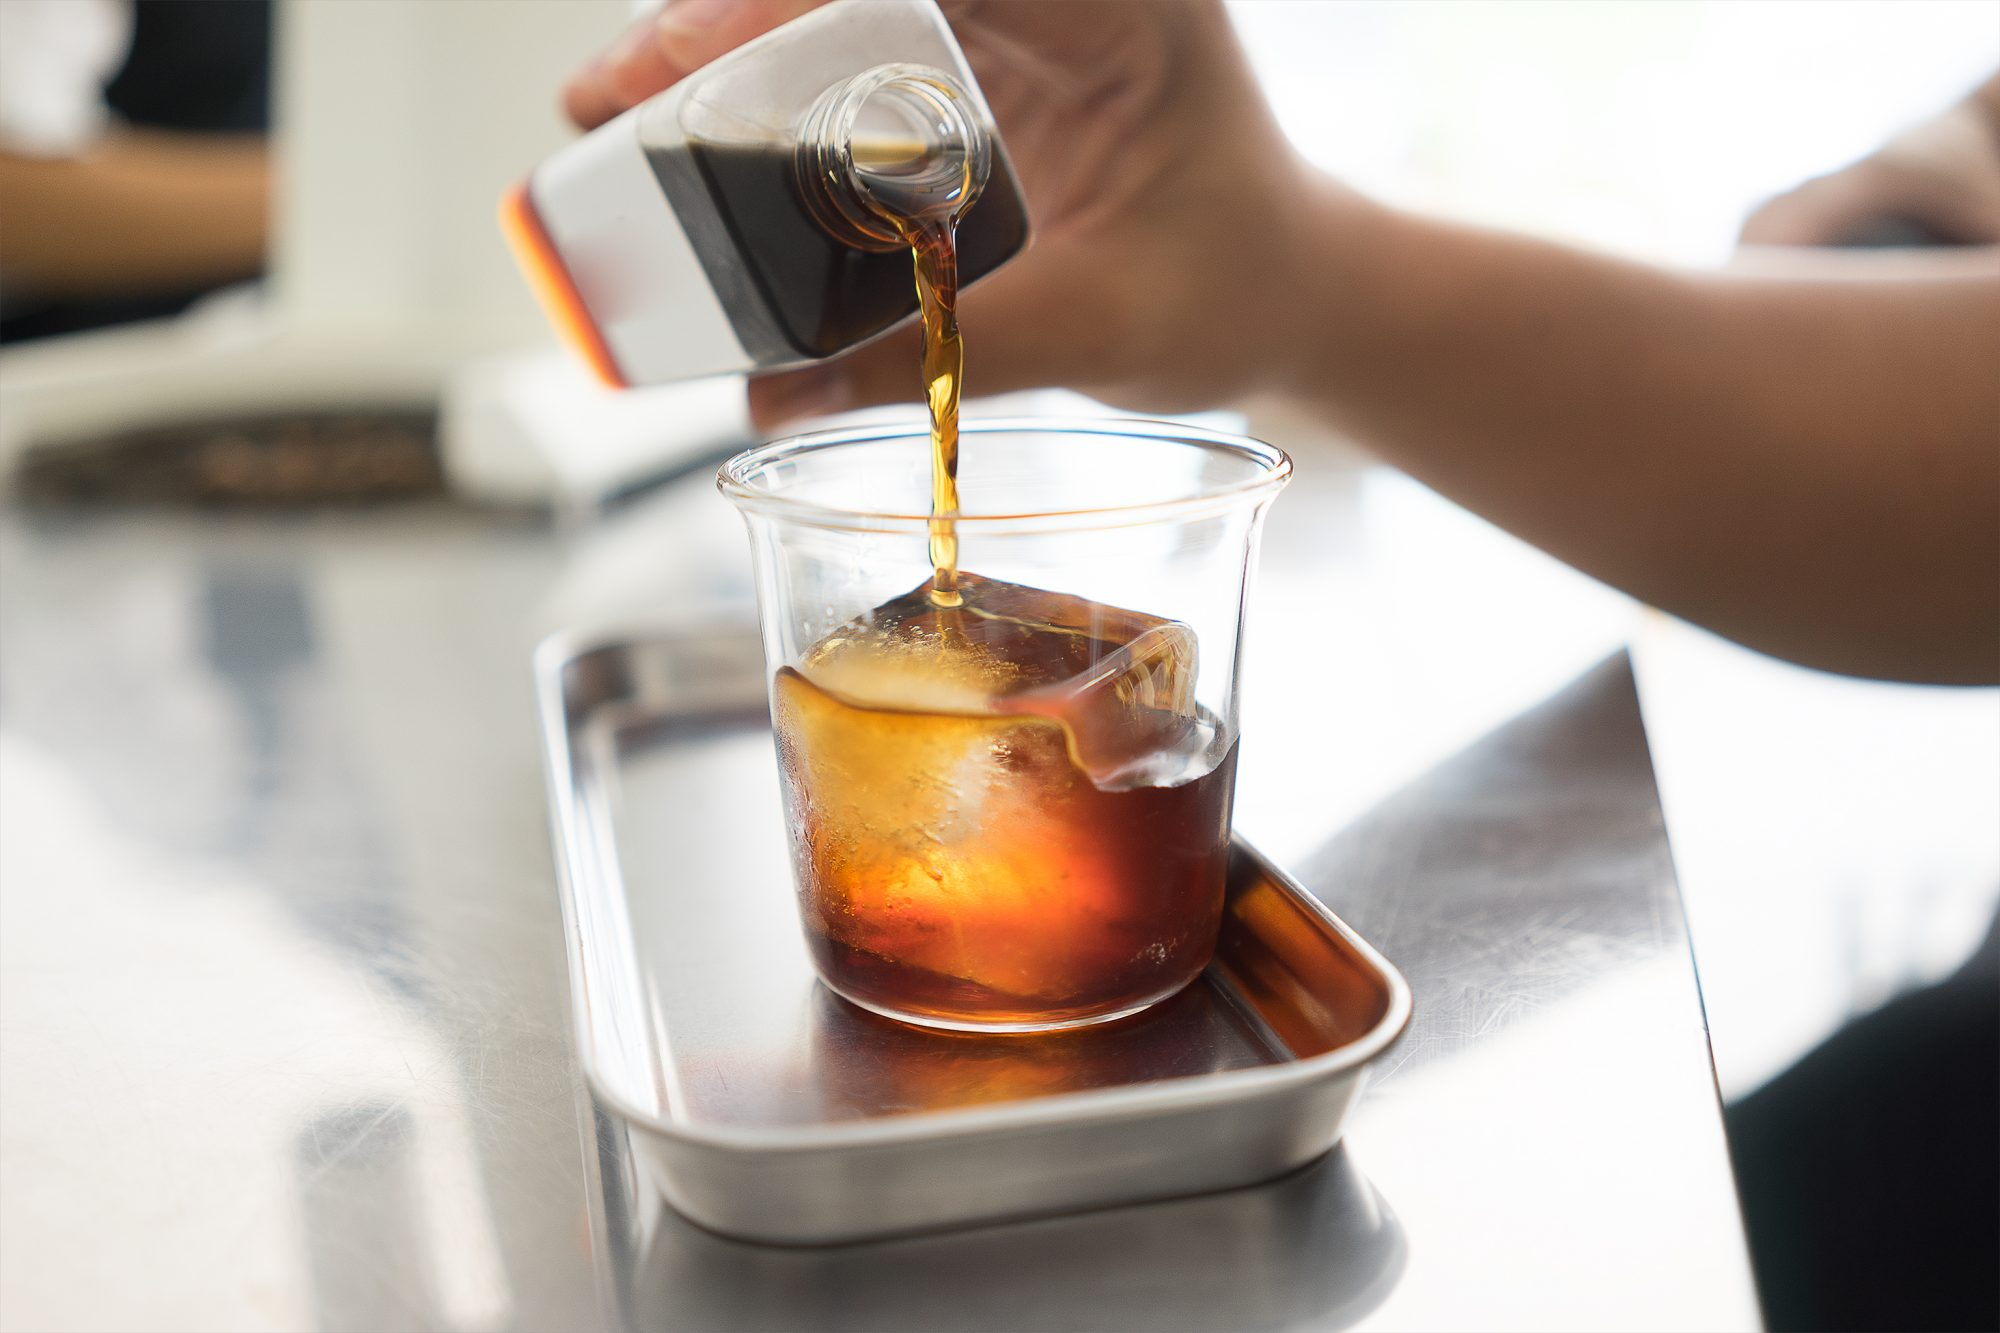 How to Make Cold Brew Coffee From Scratch